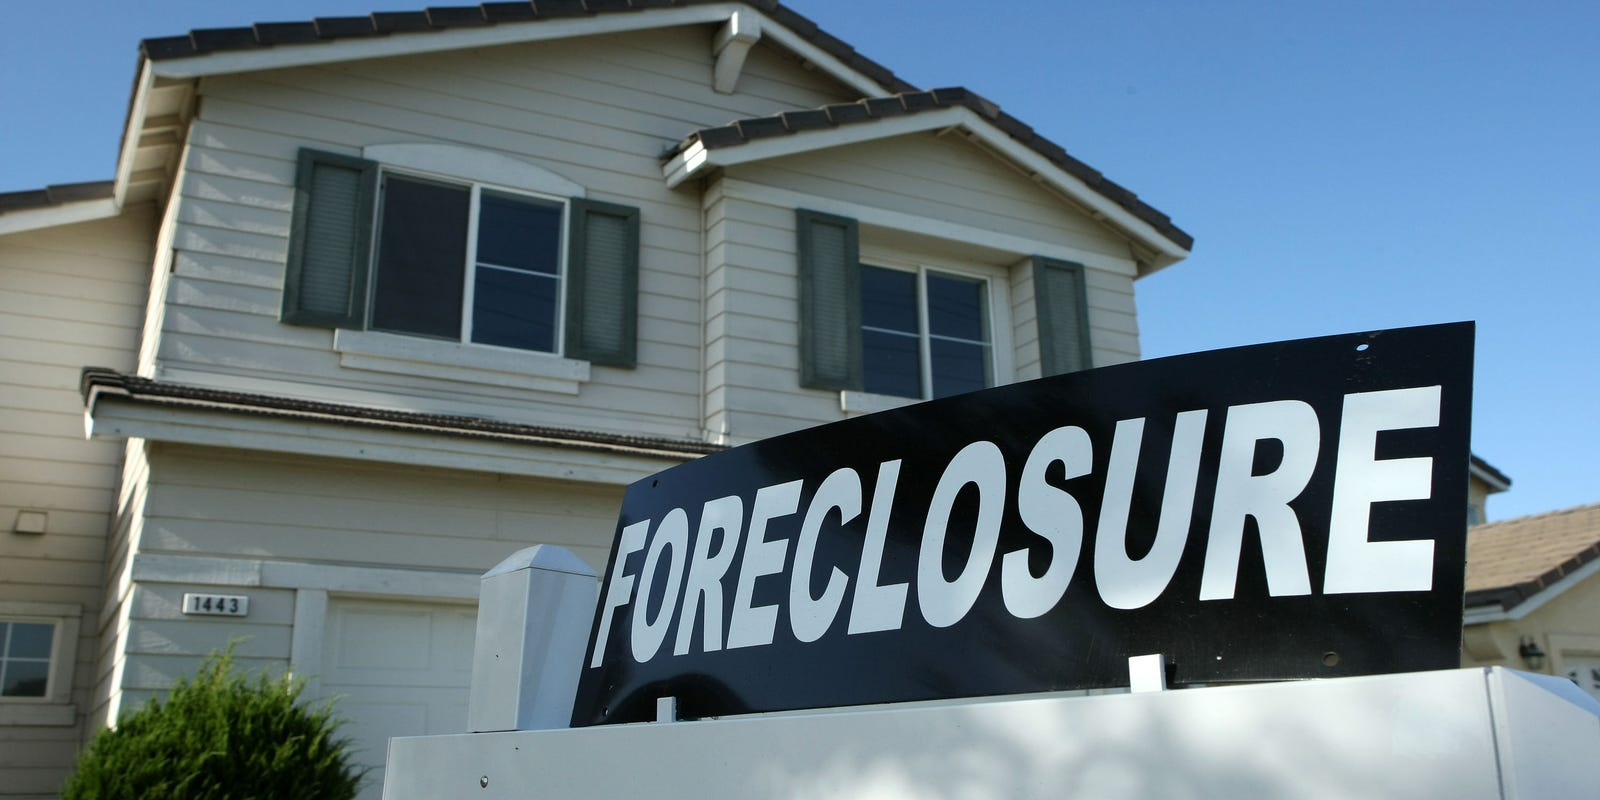 Letter: County treasurers help fight foreclosure